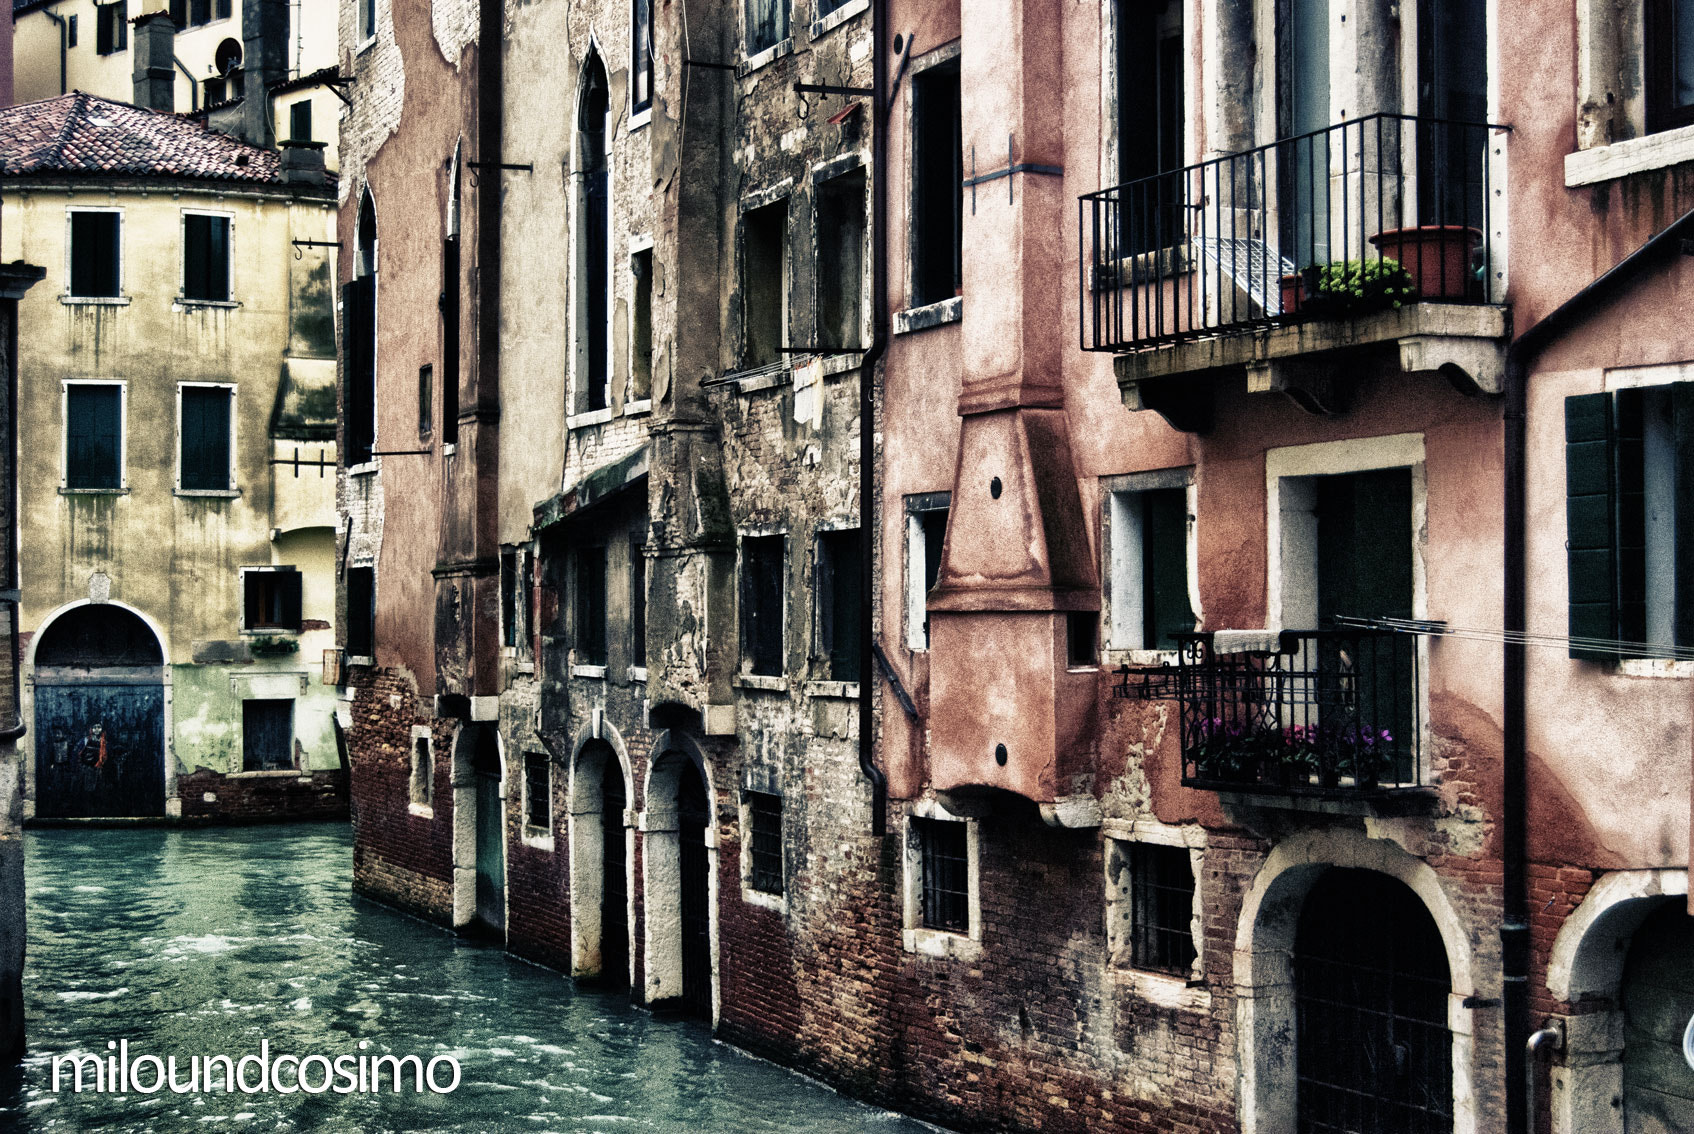 Photograph timid floods by Milo E Cosimo Fanfoto on 500px